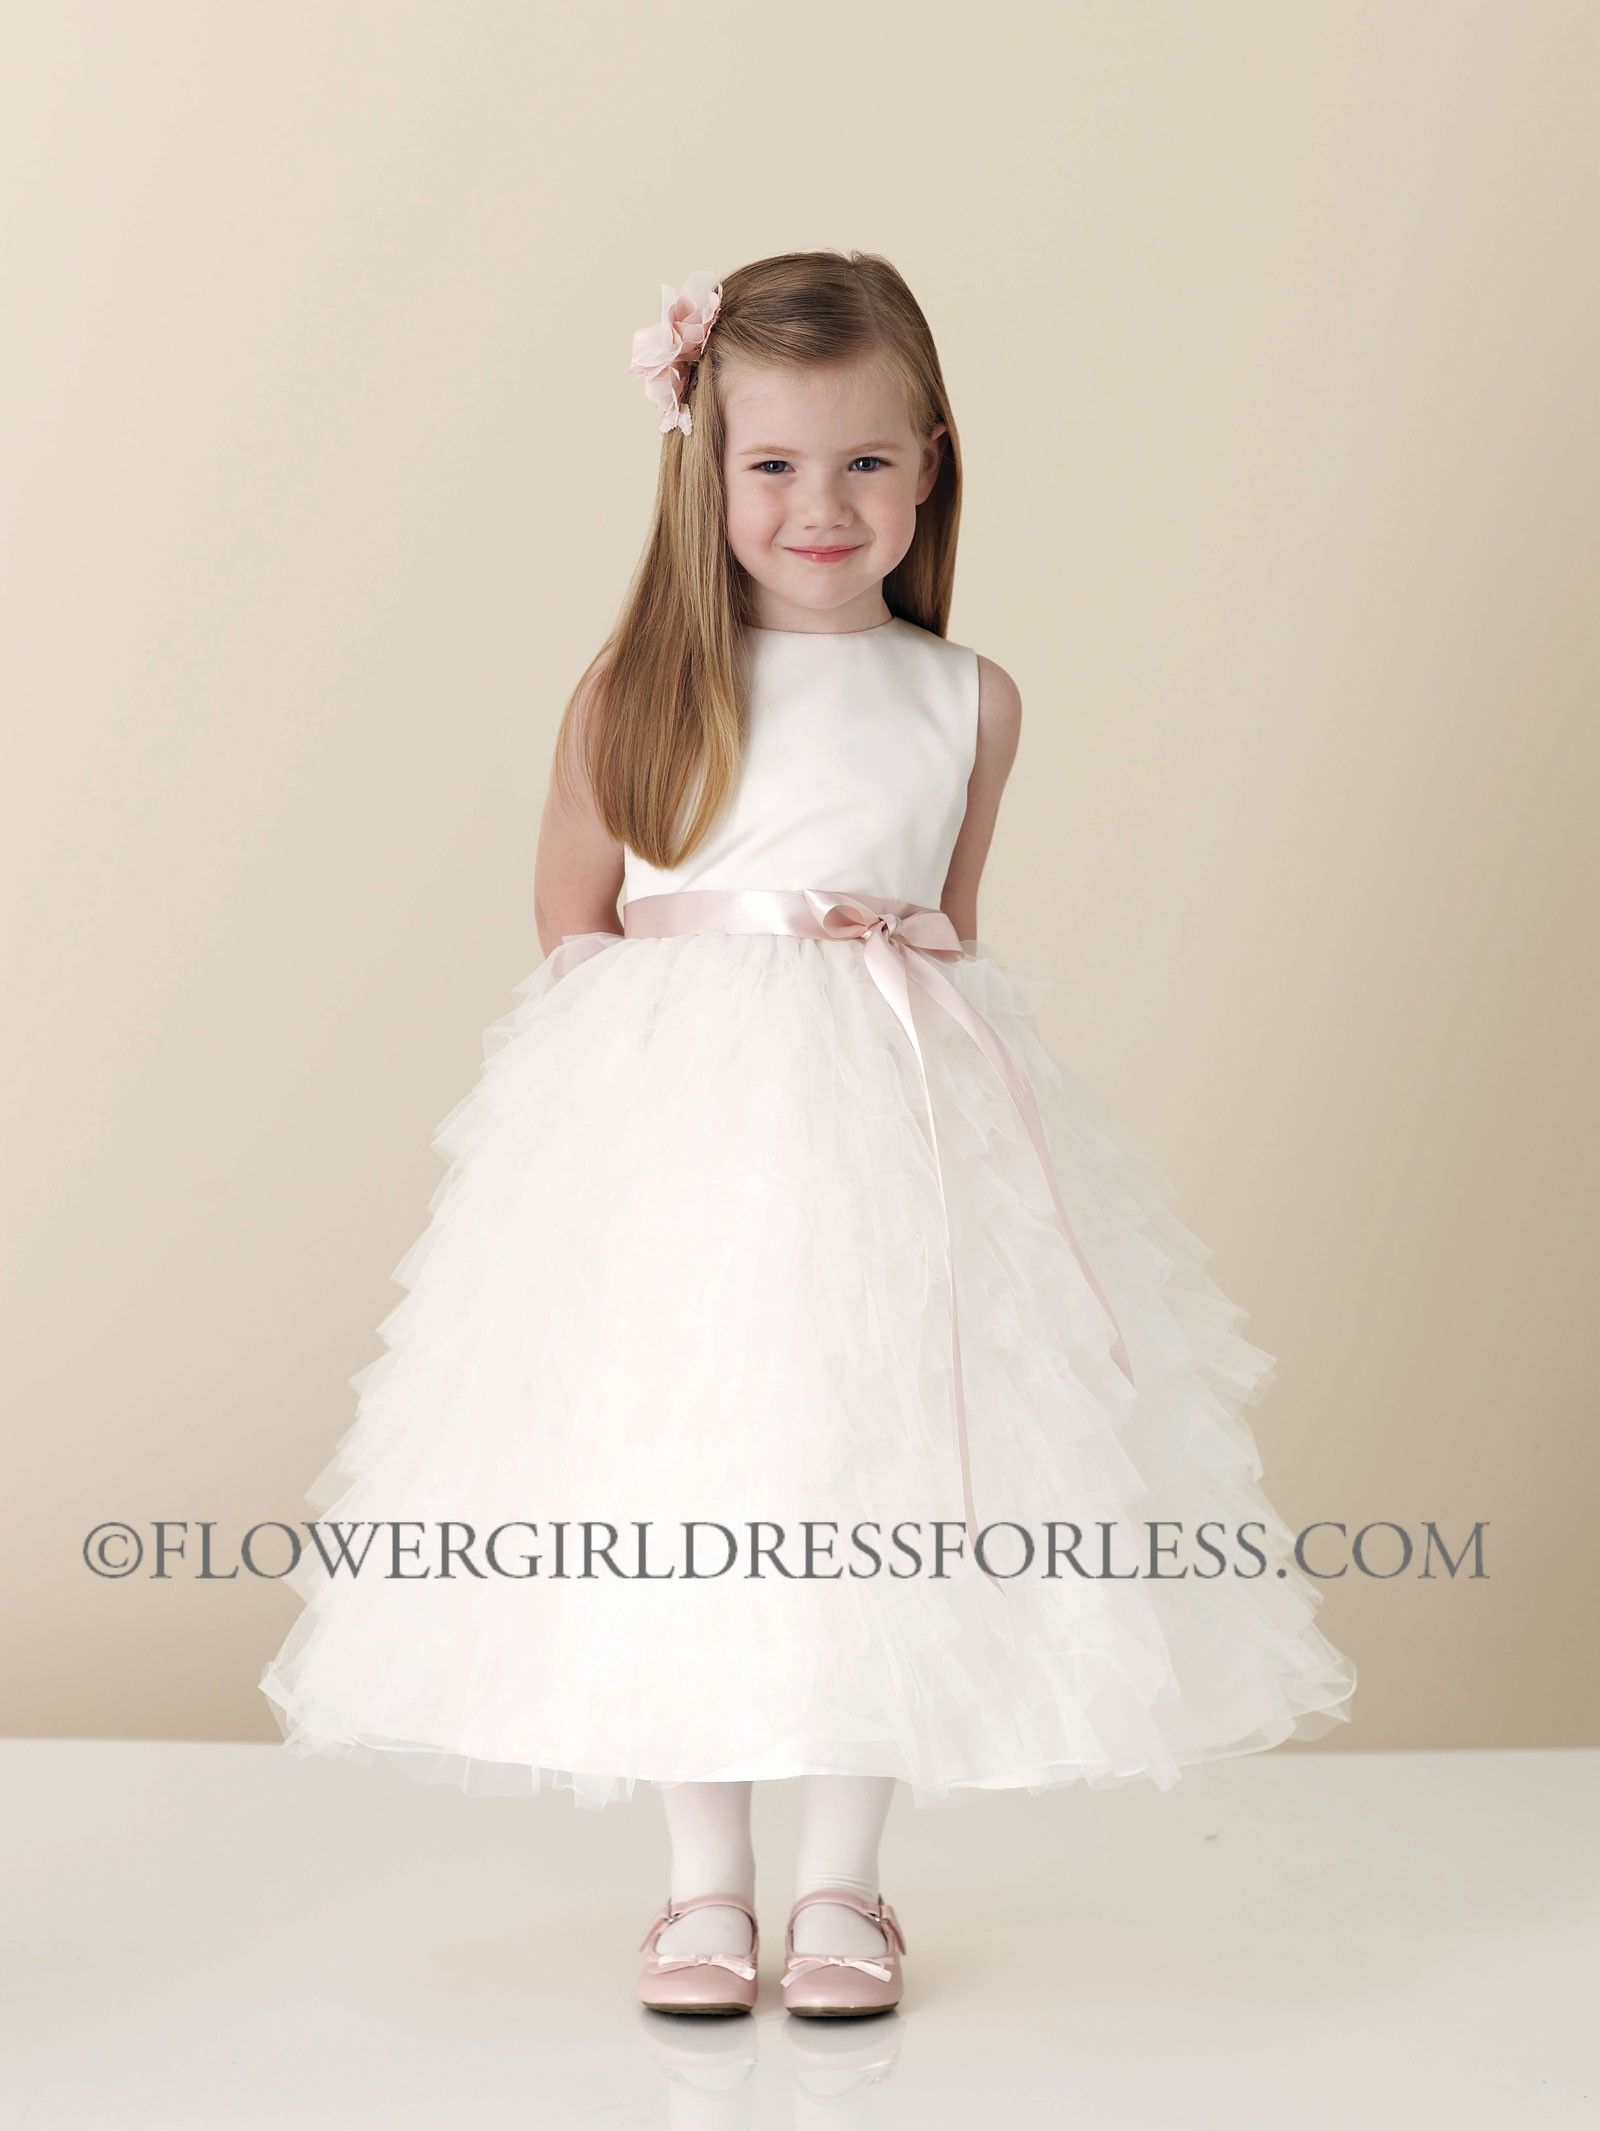 ced4832dec2 JC 110306 - Joan Calabrese Style 110306 - Sleeveless Satin and Tulle Ruffle  Dress with Choice of 31 Ribbon Color - Ivory - Flower Girl Dress For Less